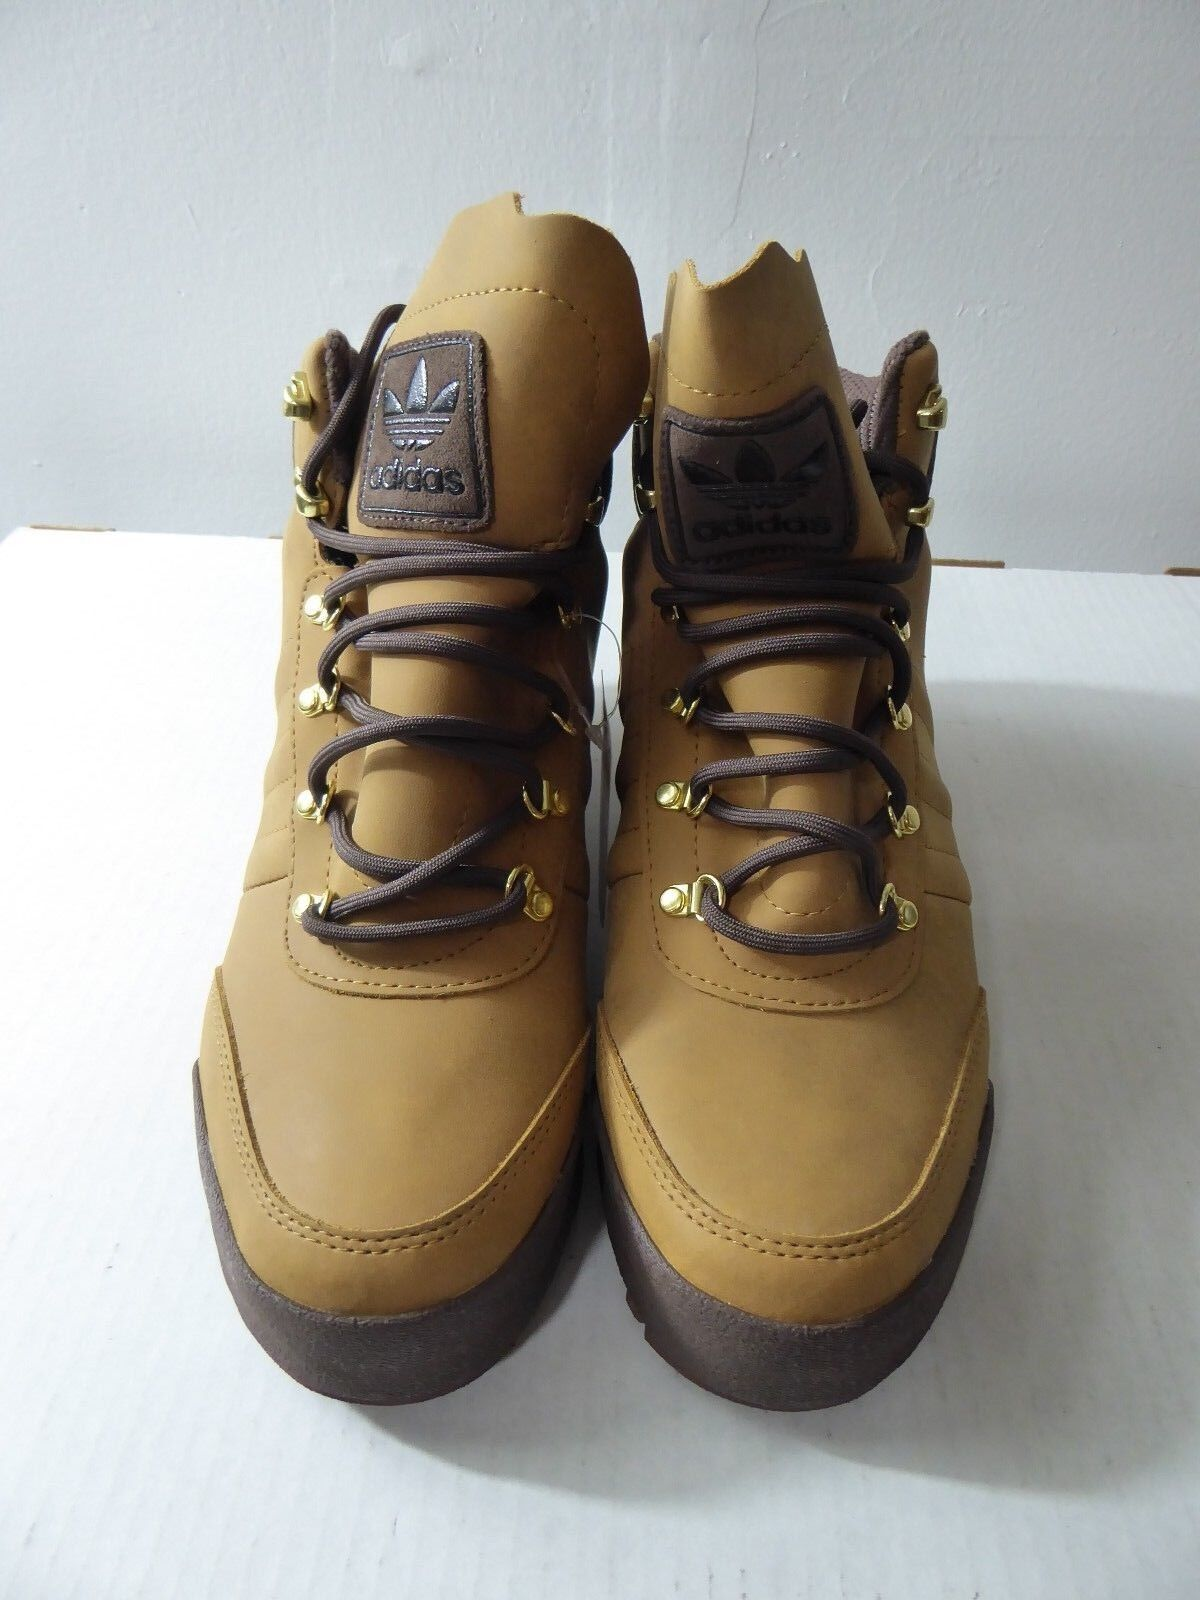 NEW- ADIDAS JAKE BOOTS 2.0, STYLE: BB8923, MESA BROWN, ASST. SIZES,  84.95